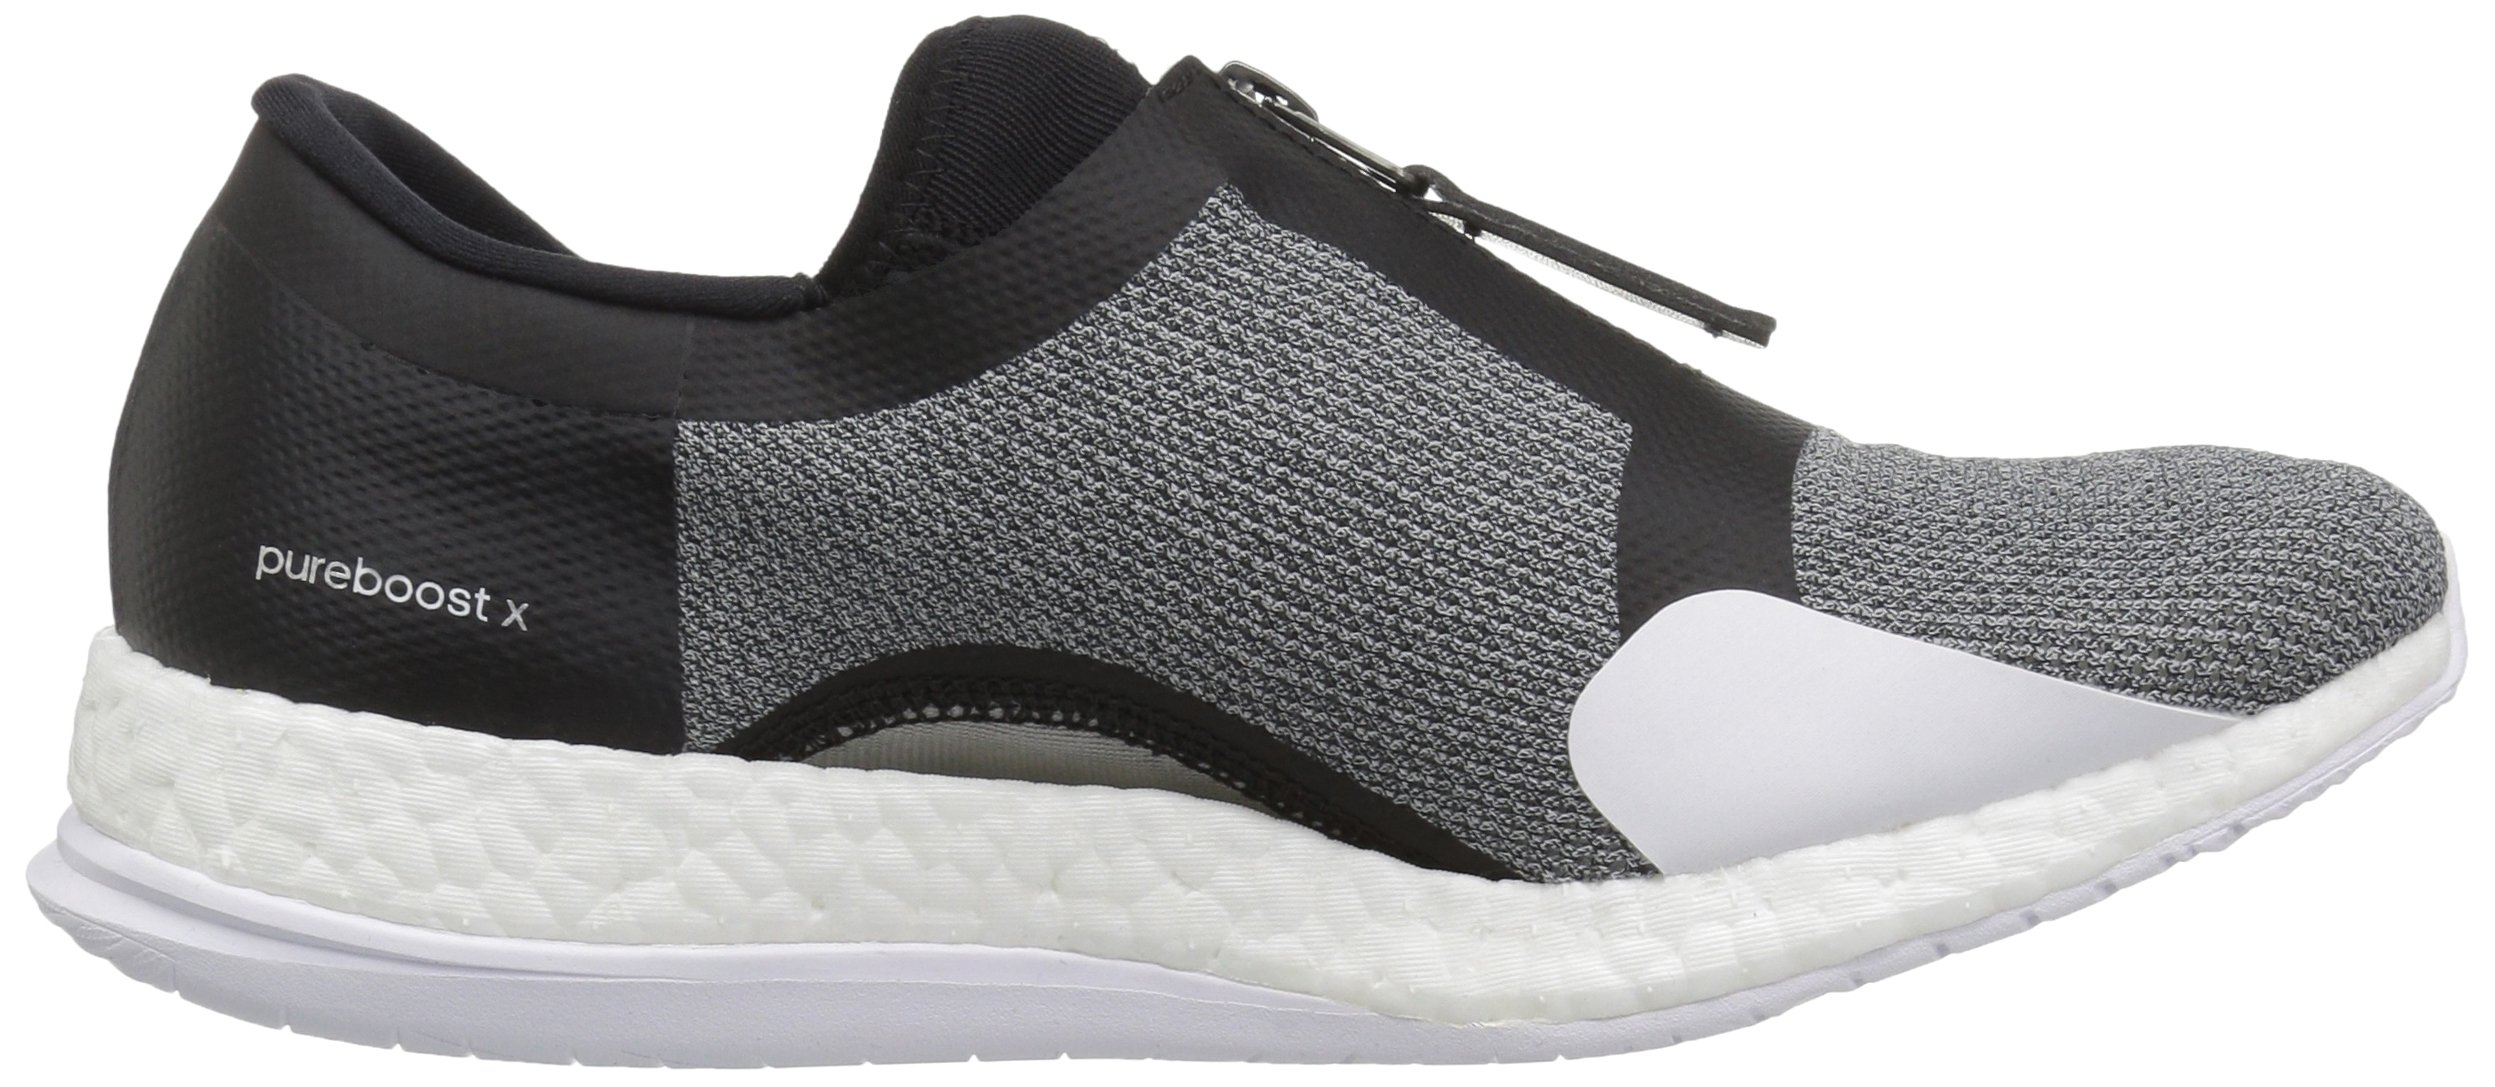 812C7DxJB3L - adidas Womens Pure Boost x tr Zip Low Top Slip On Fashion Sneakers